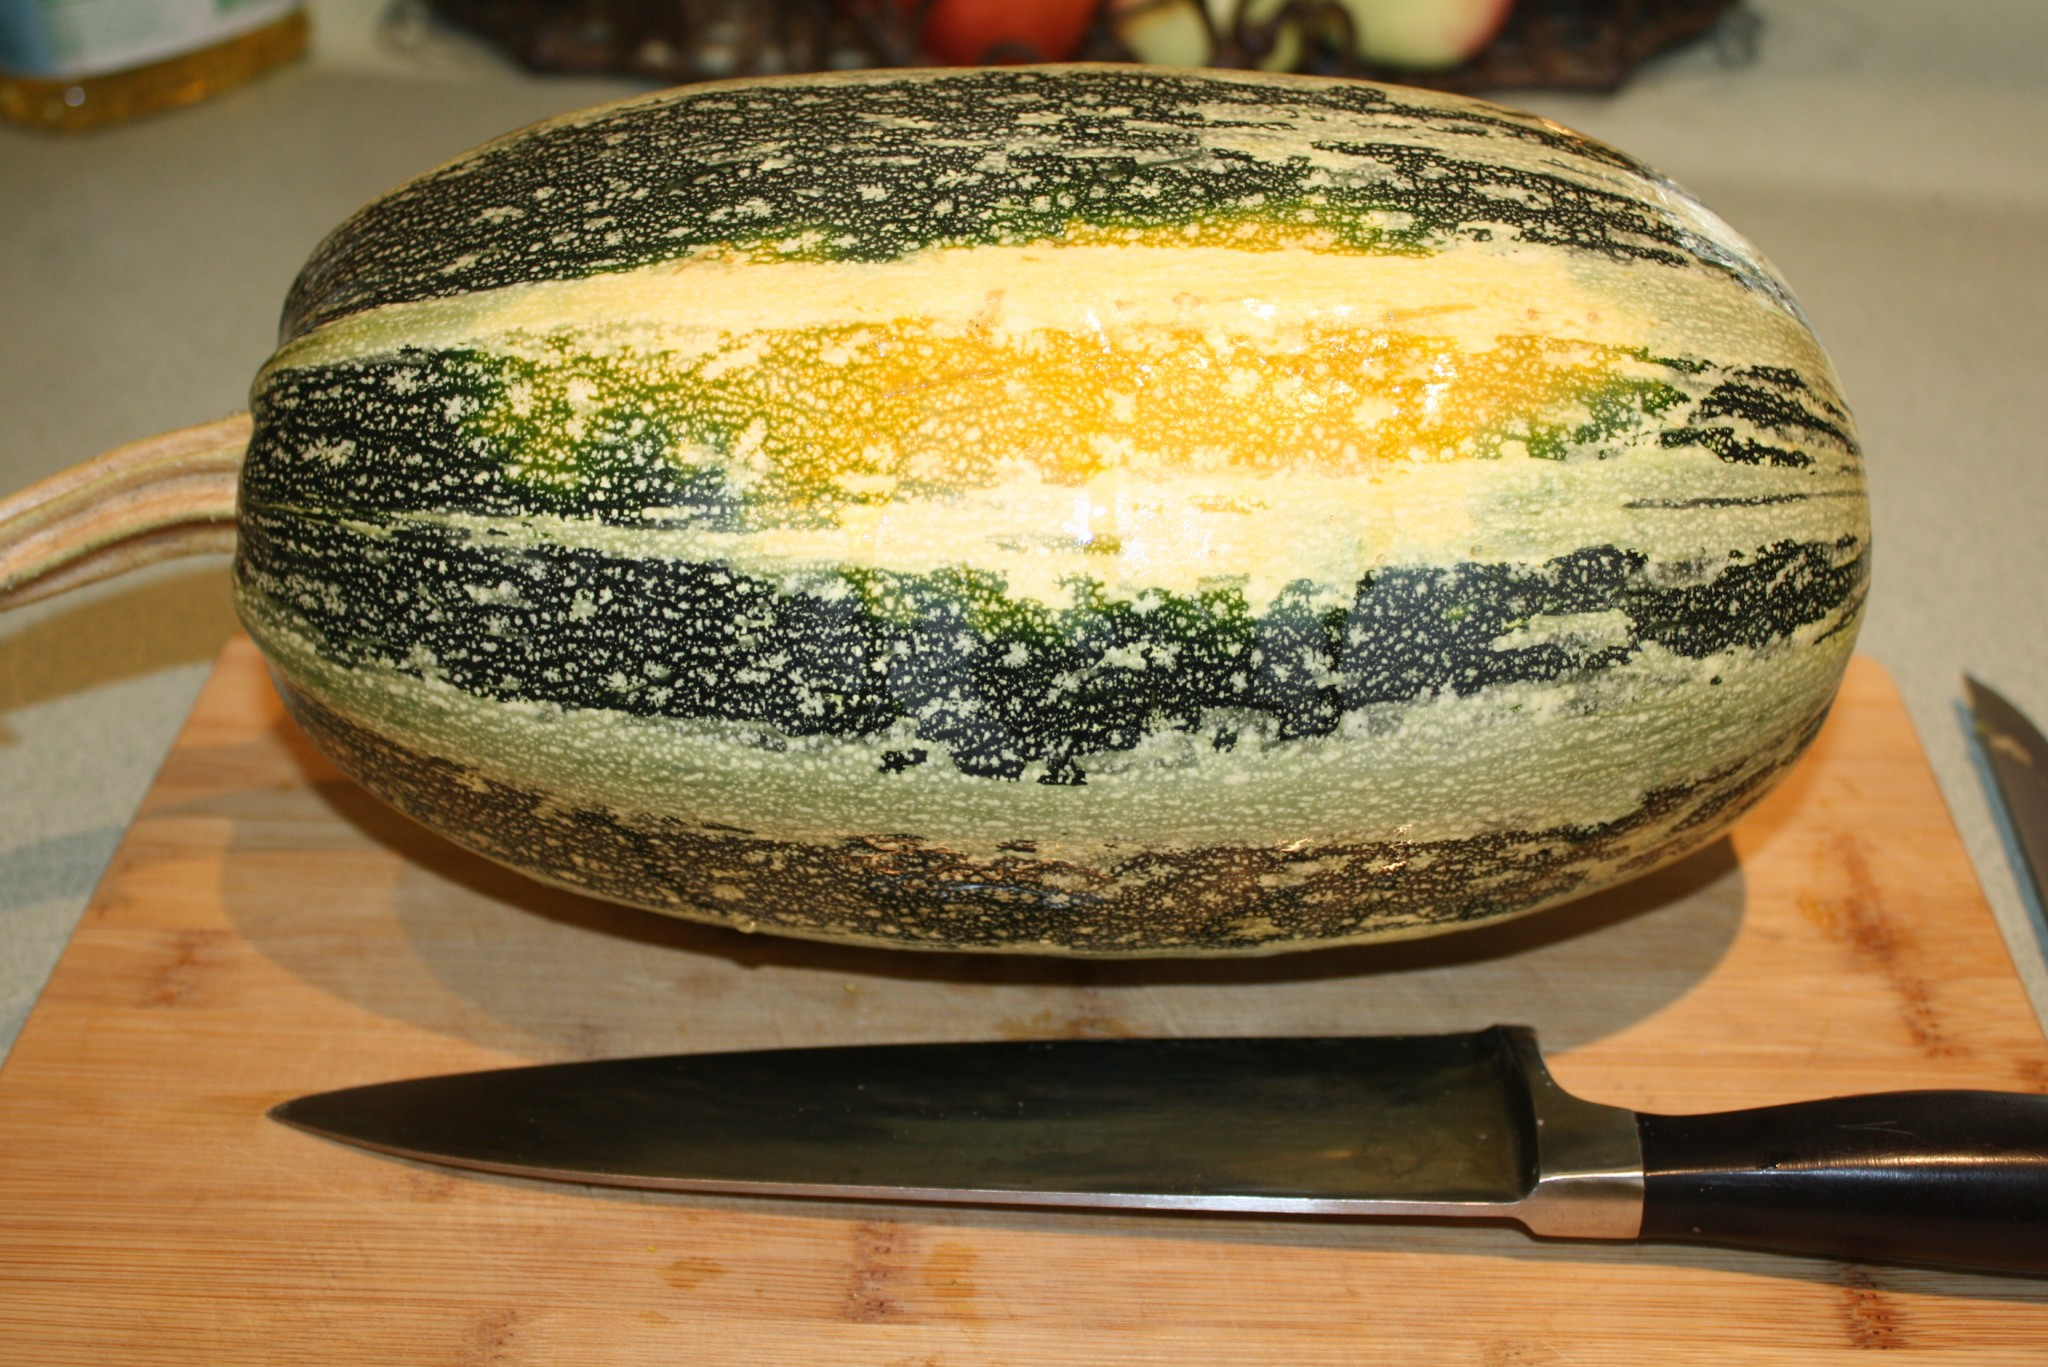 Fullsize Of When To Pick Spaghetti Squash